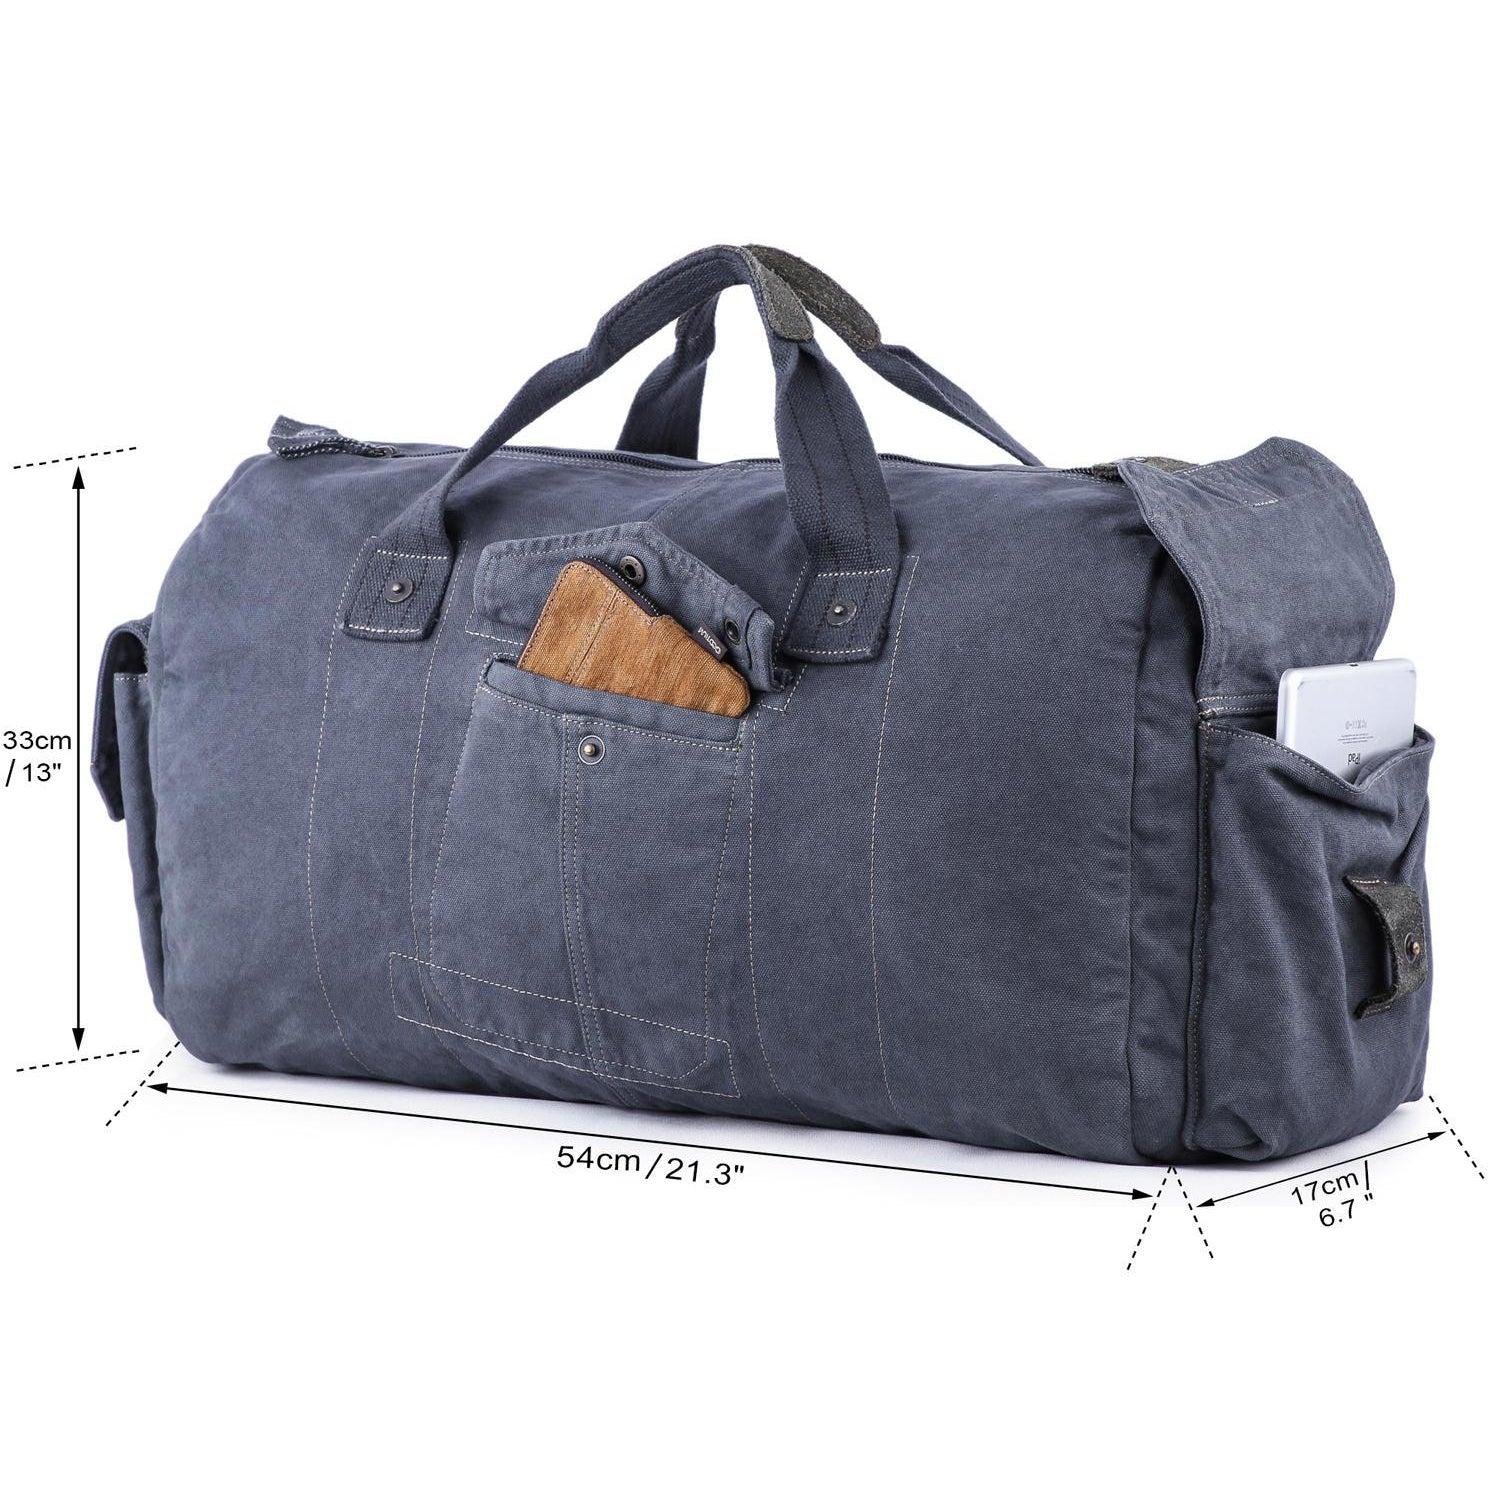 Gootium Canvas Duffel Bag  60404 4e15883a0ca